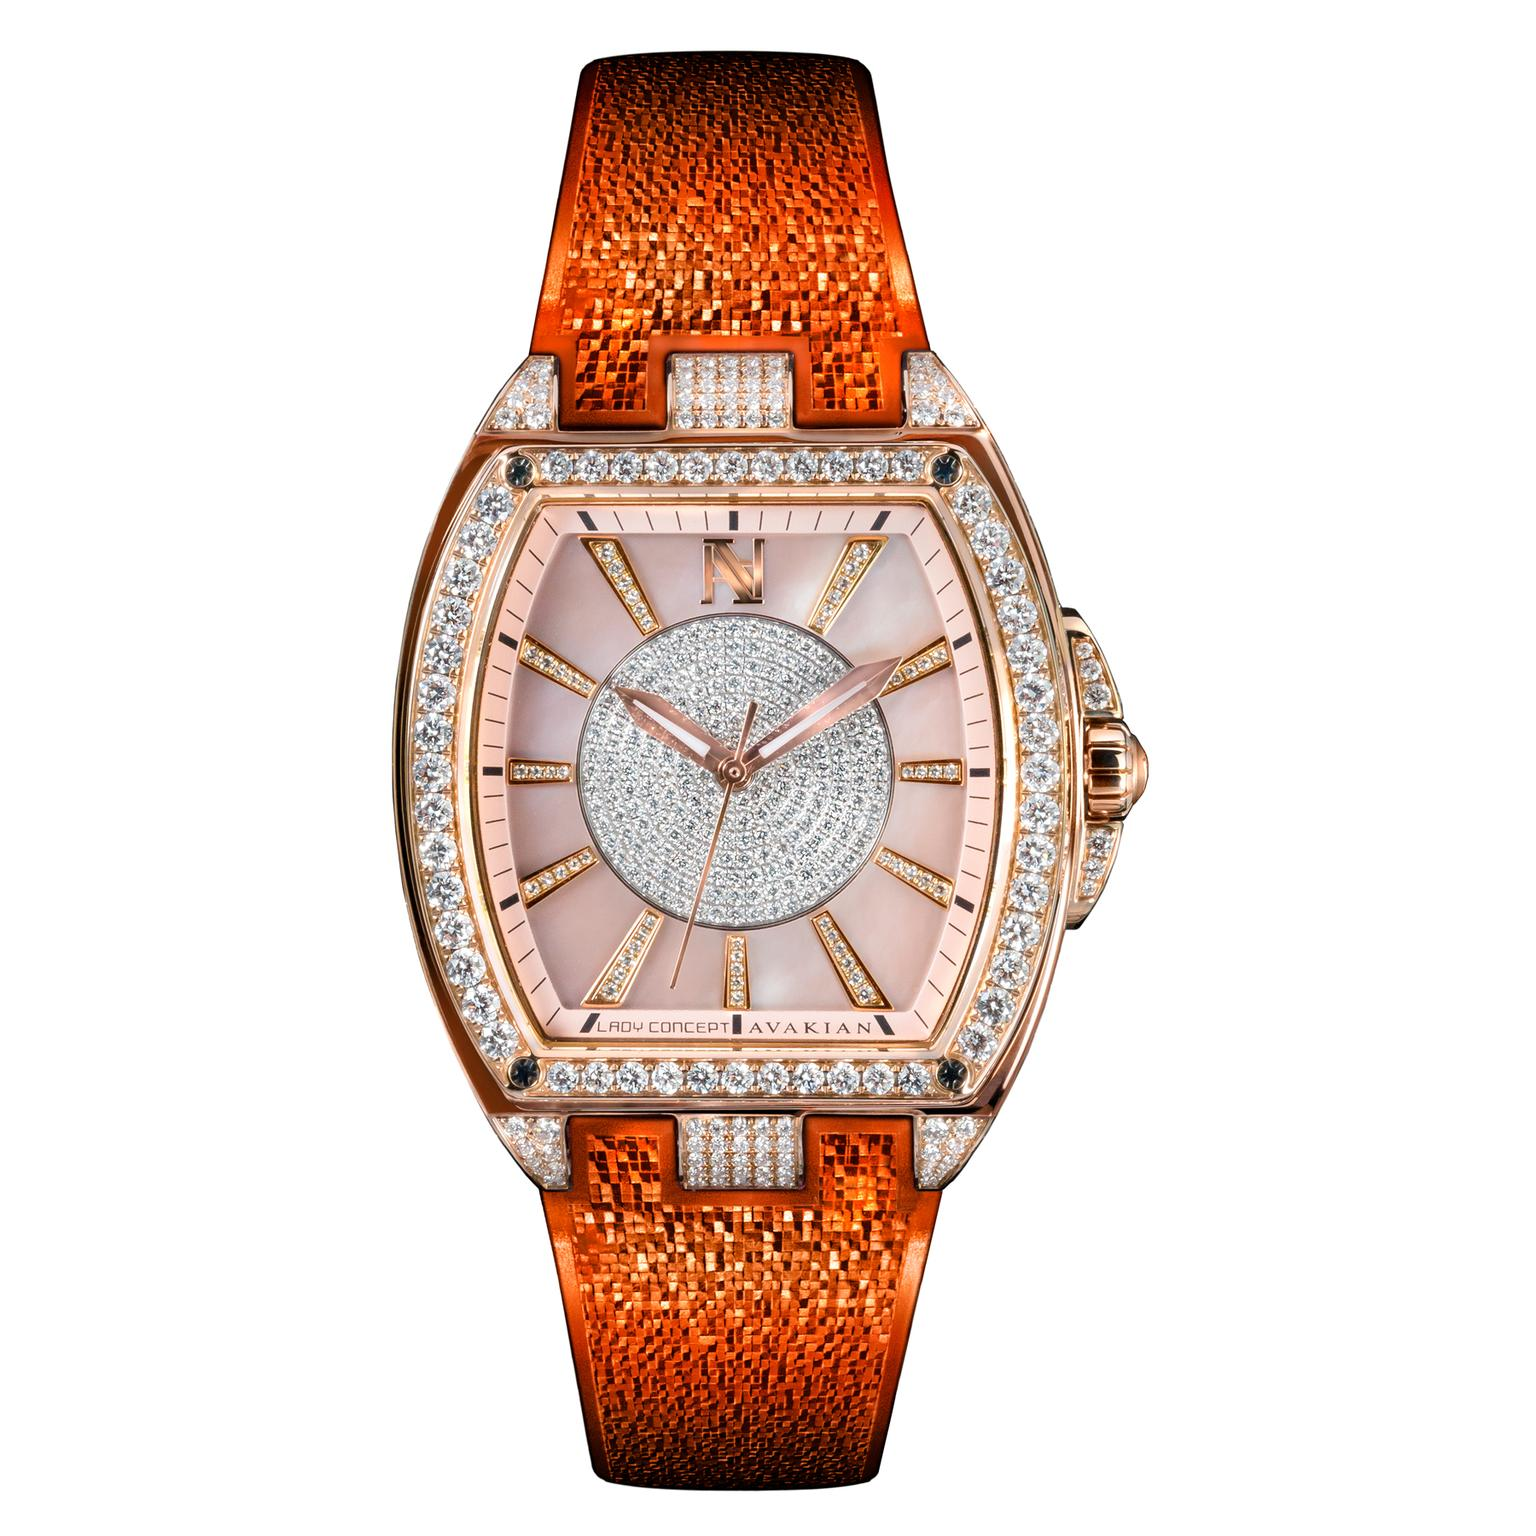 Avakian Lady Concept Orange watch